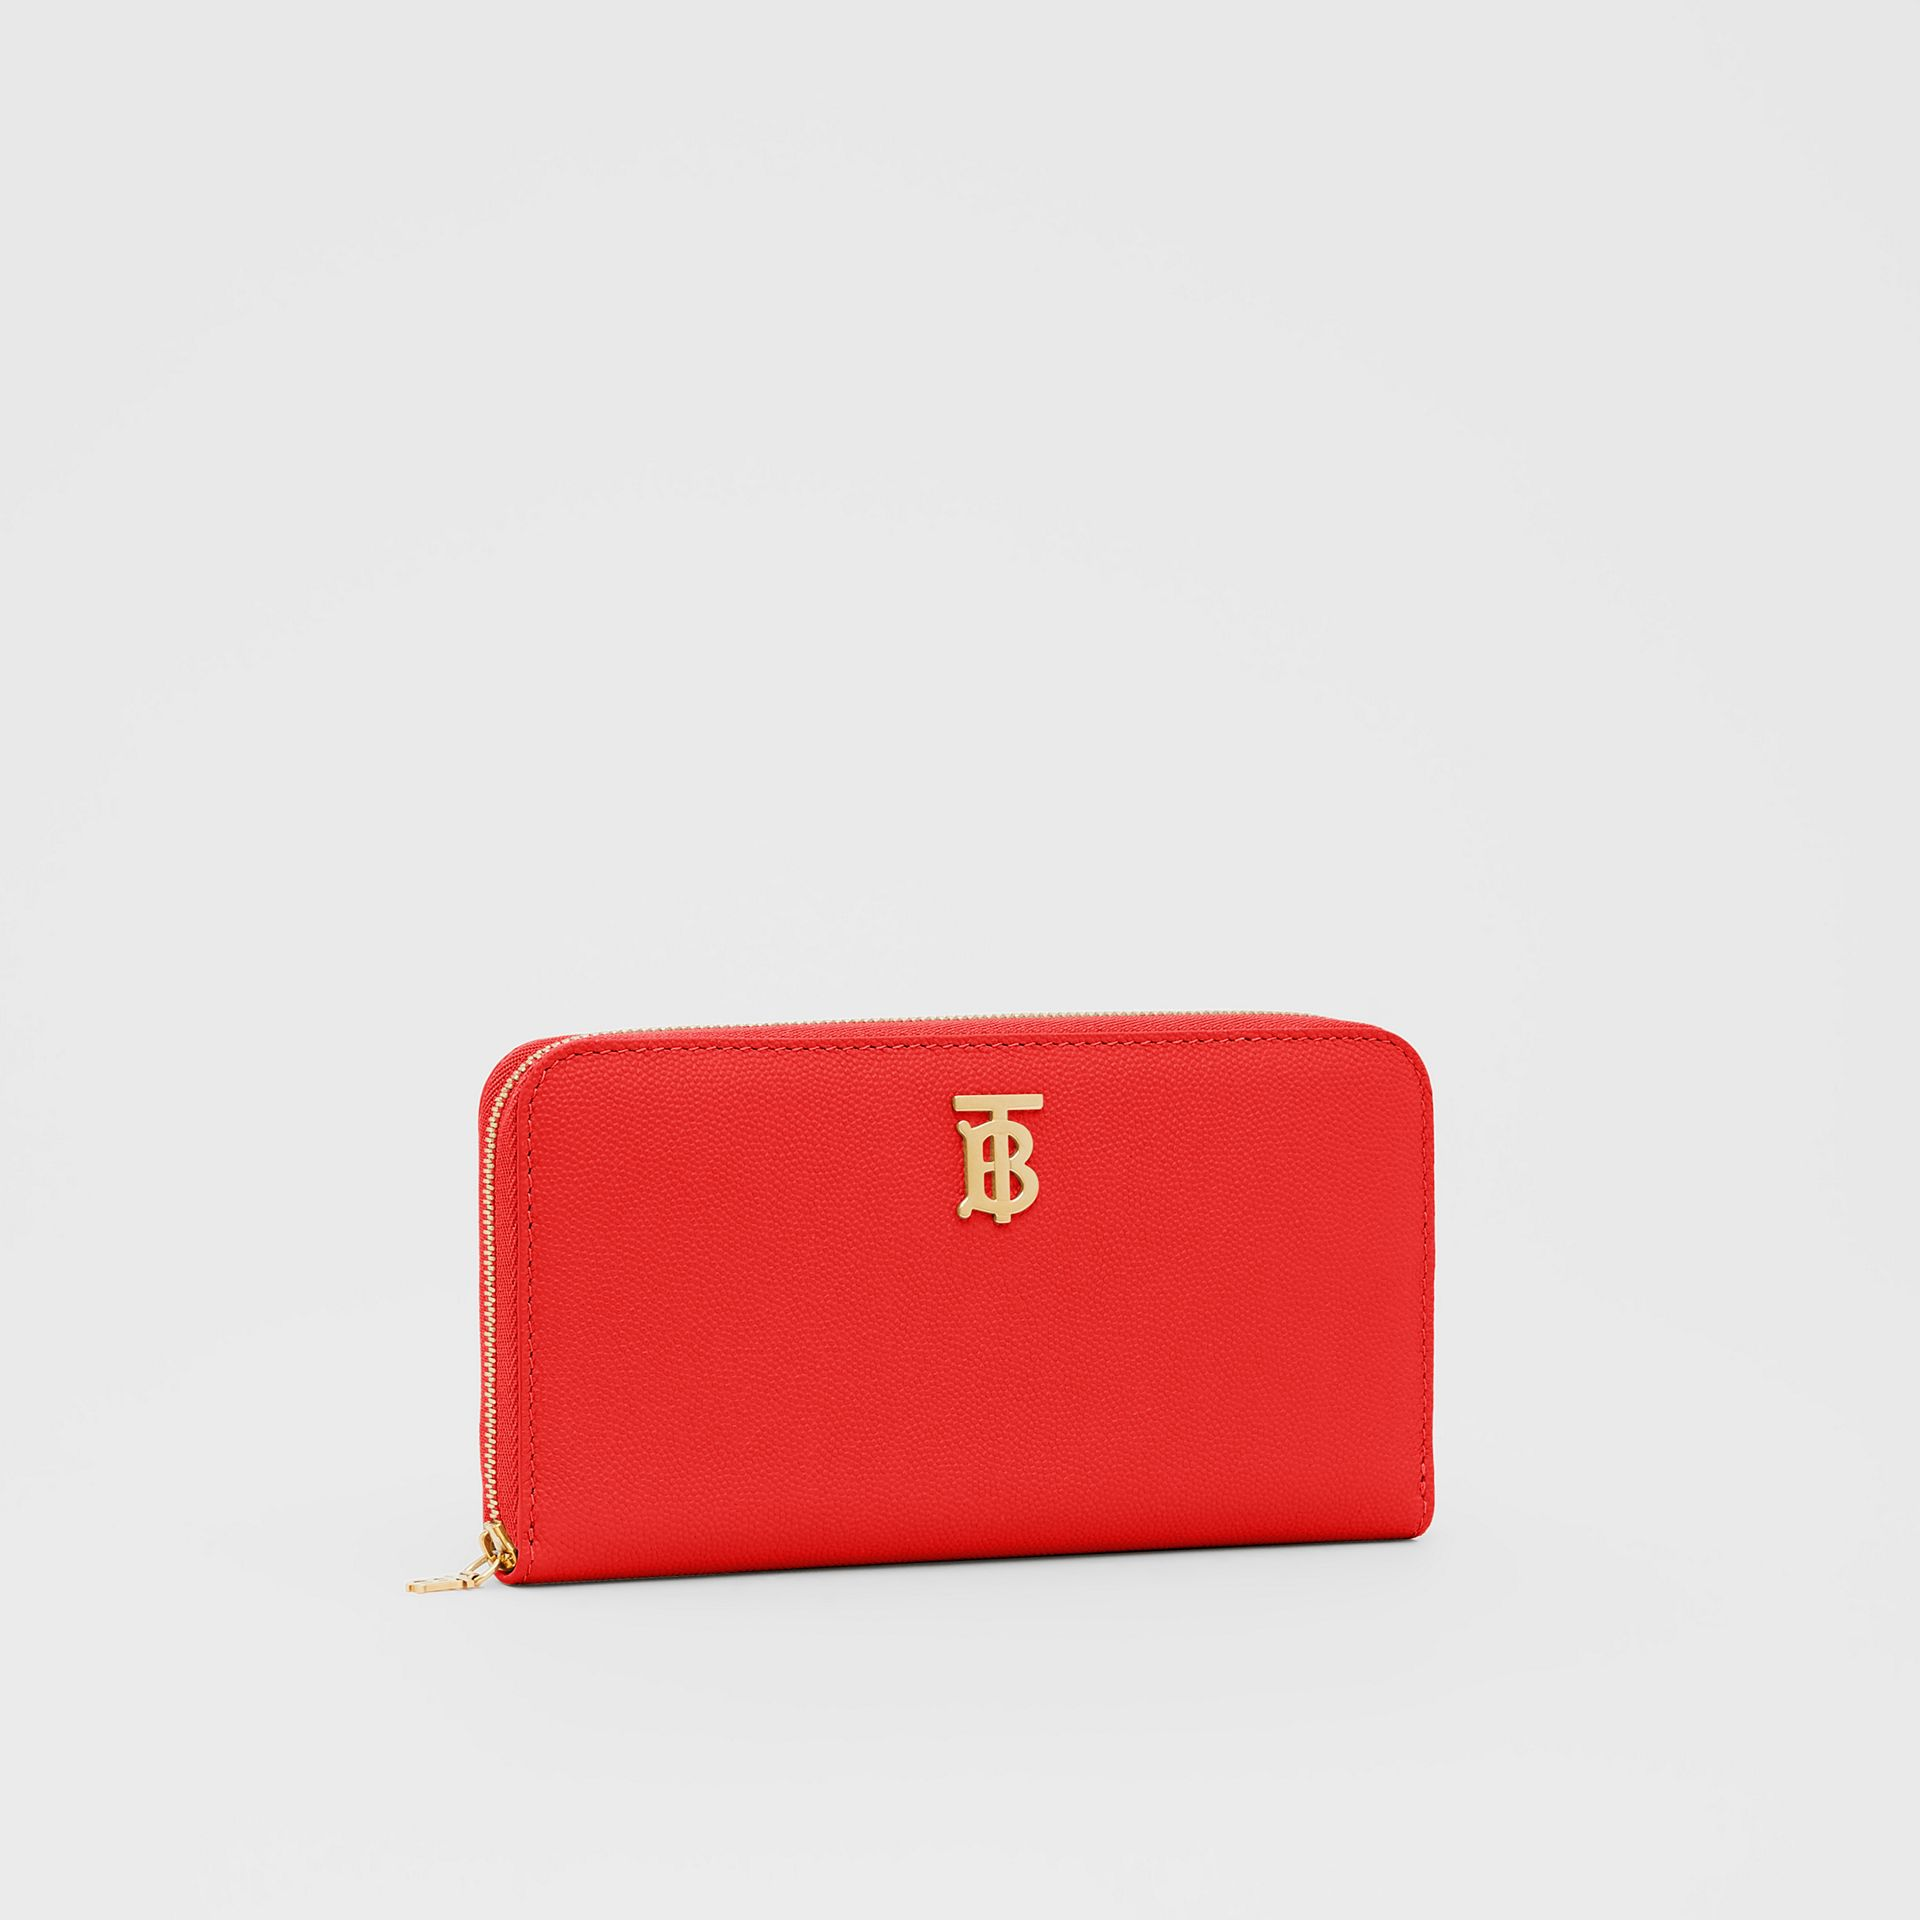 Monogram Motif Grainy Leather Ziparound Wallet in Bright Red - Women | Burberry - gallery image 4